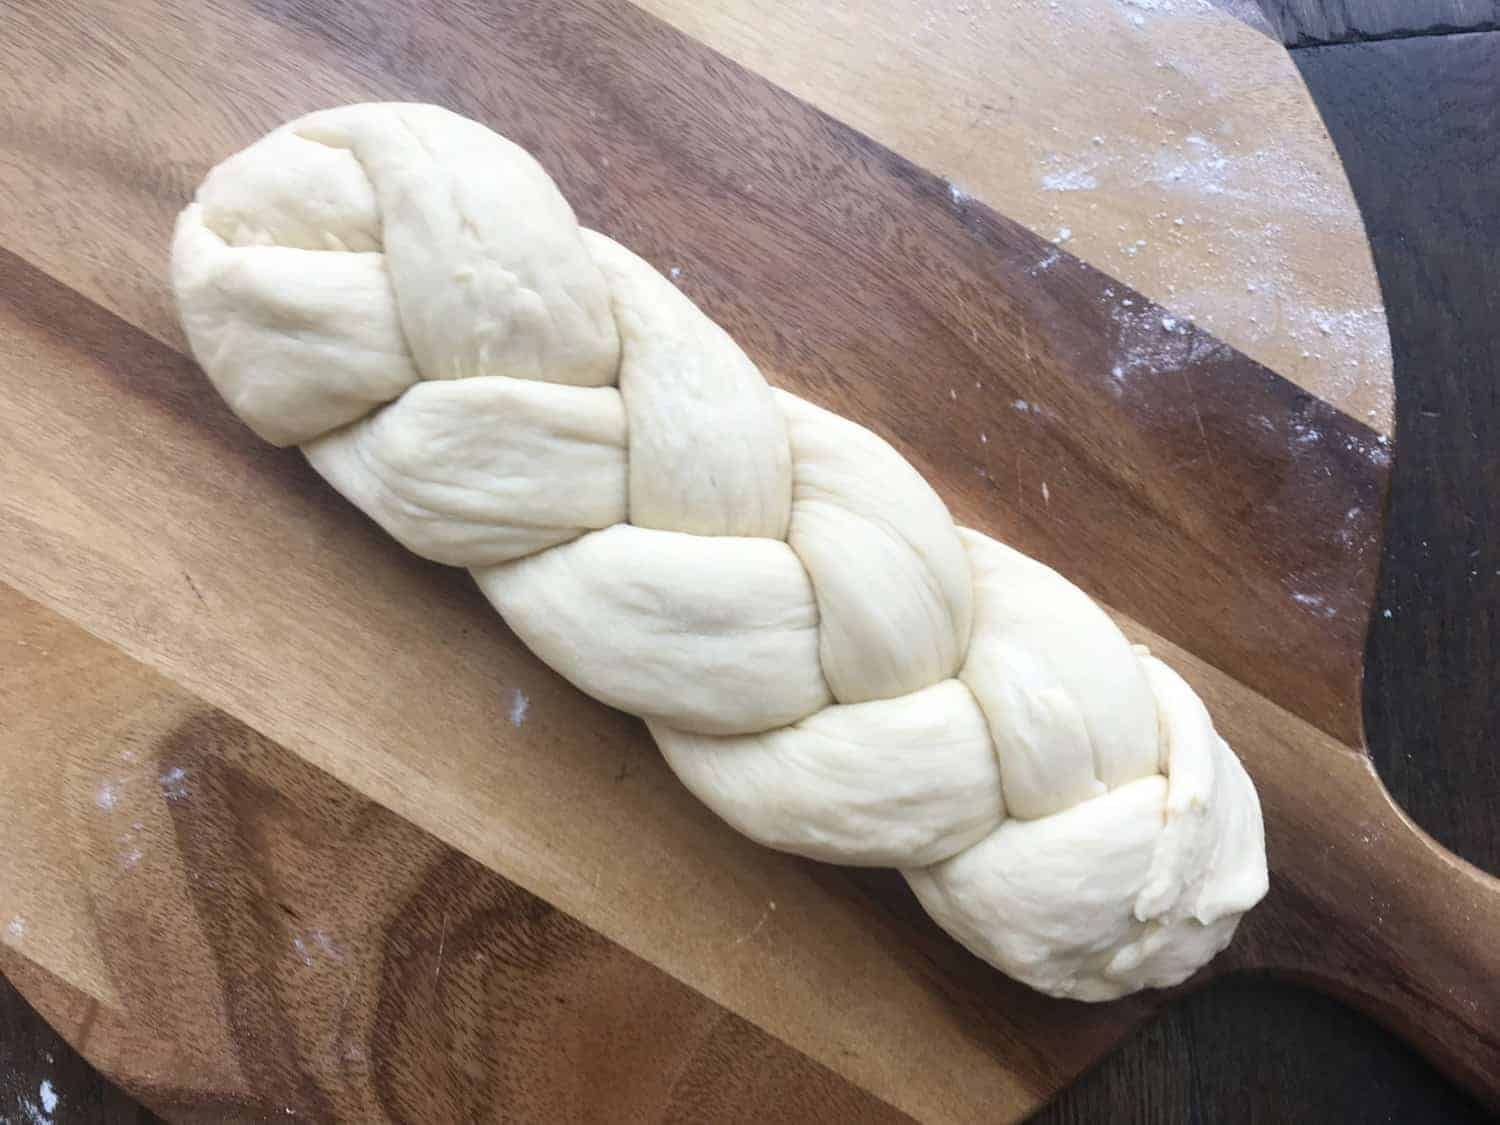 A brioche loaf that has been made into a plait